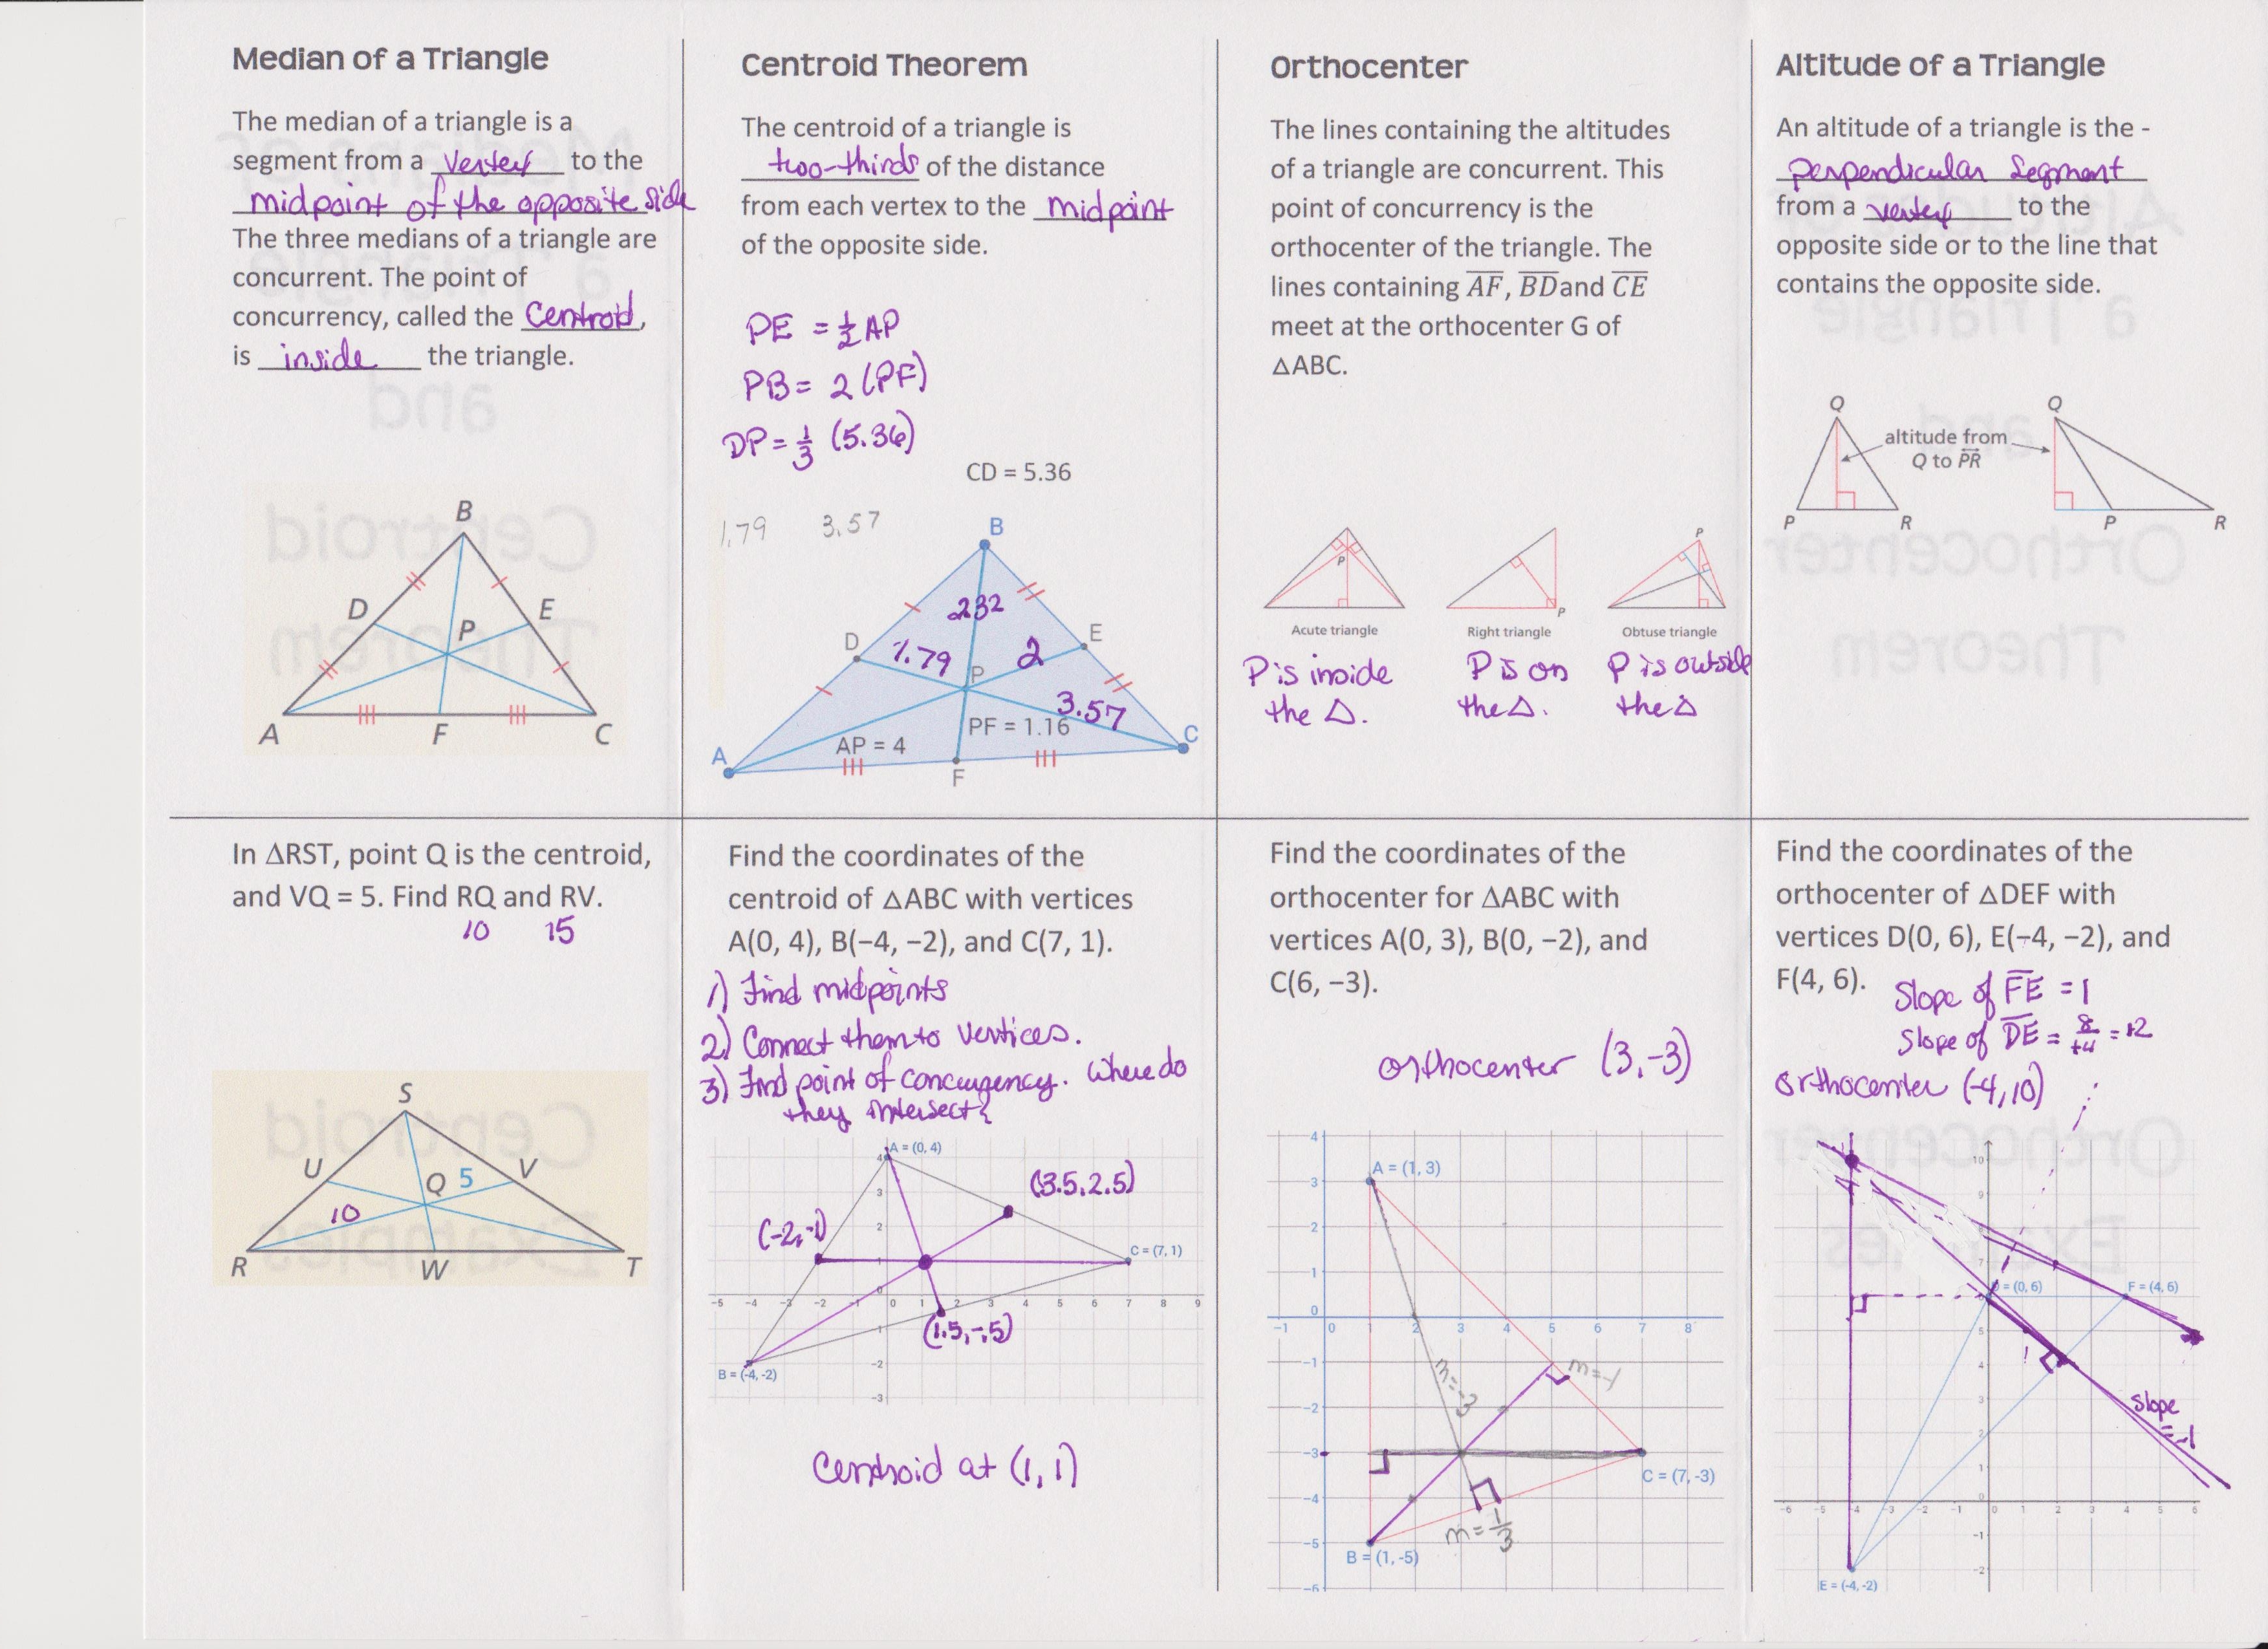 worksheet Medians And Altitudes Of Triangles Worksheet relationships within triangles systry medians and altitudes foldable filled out